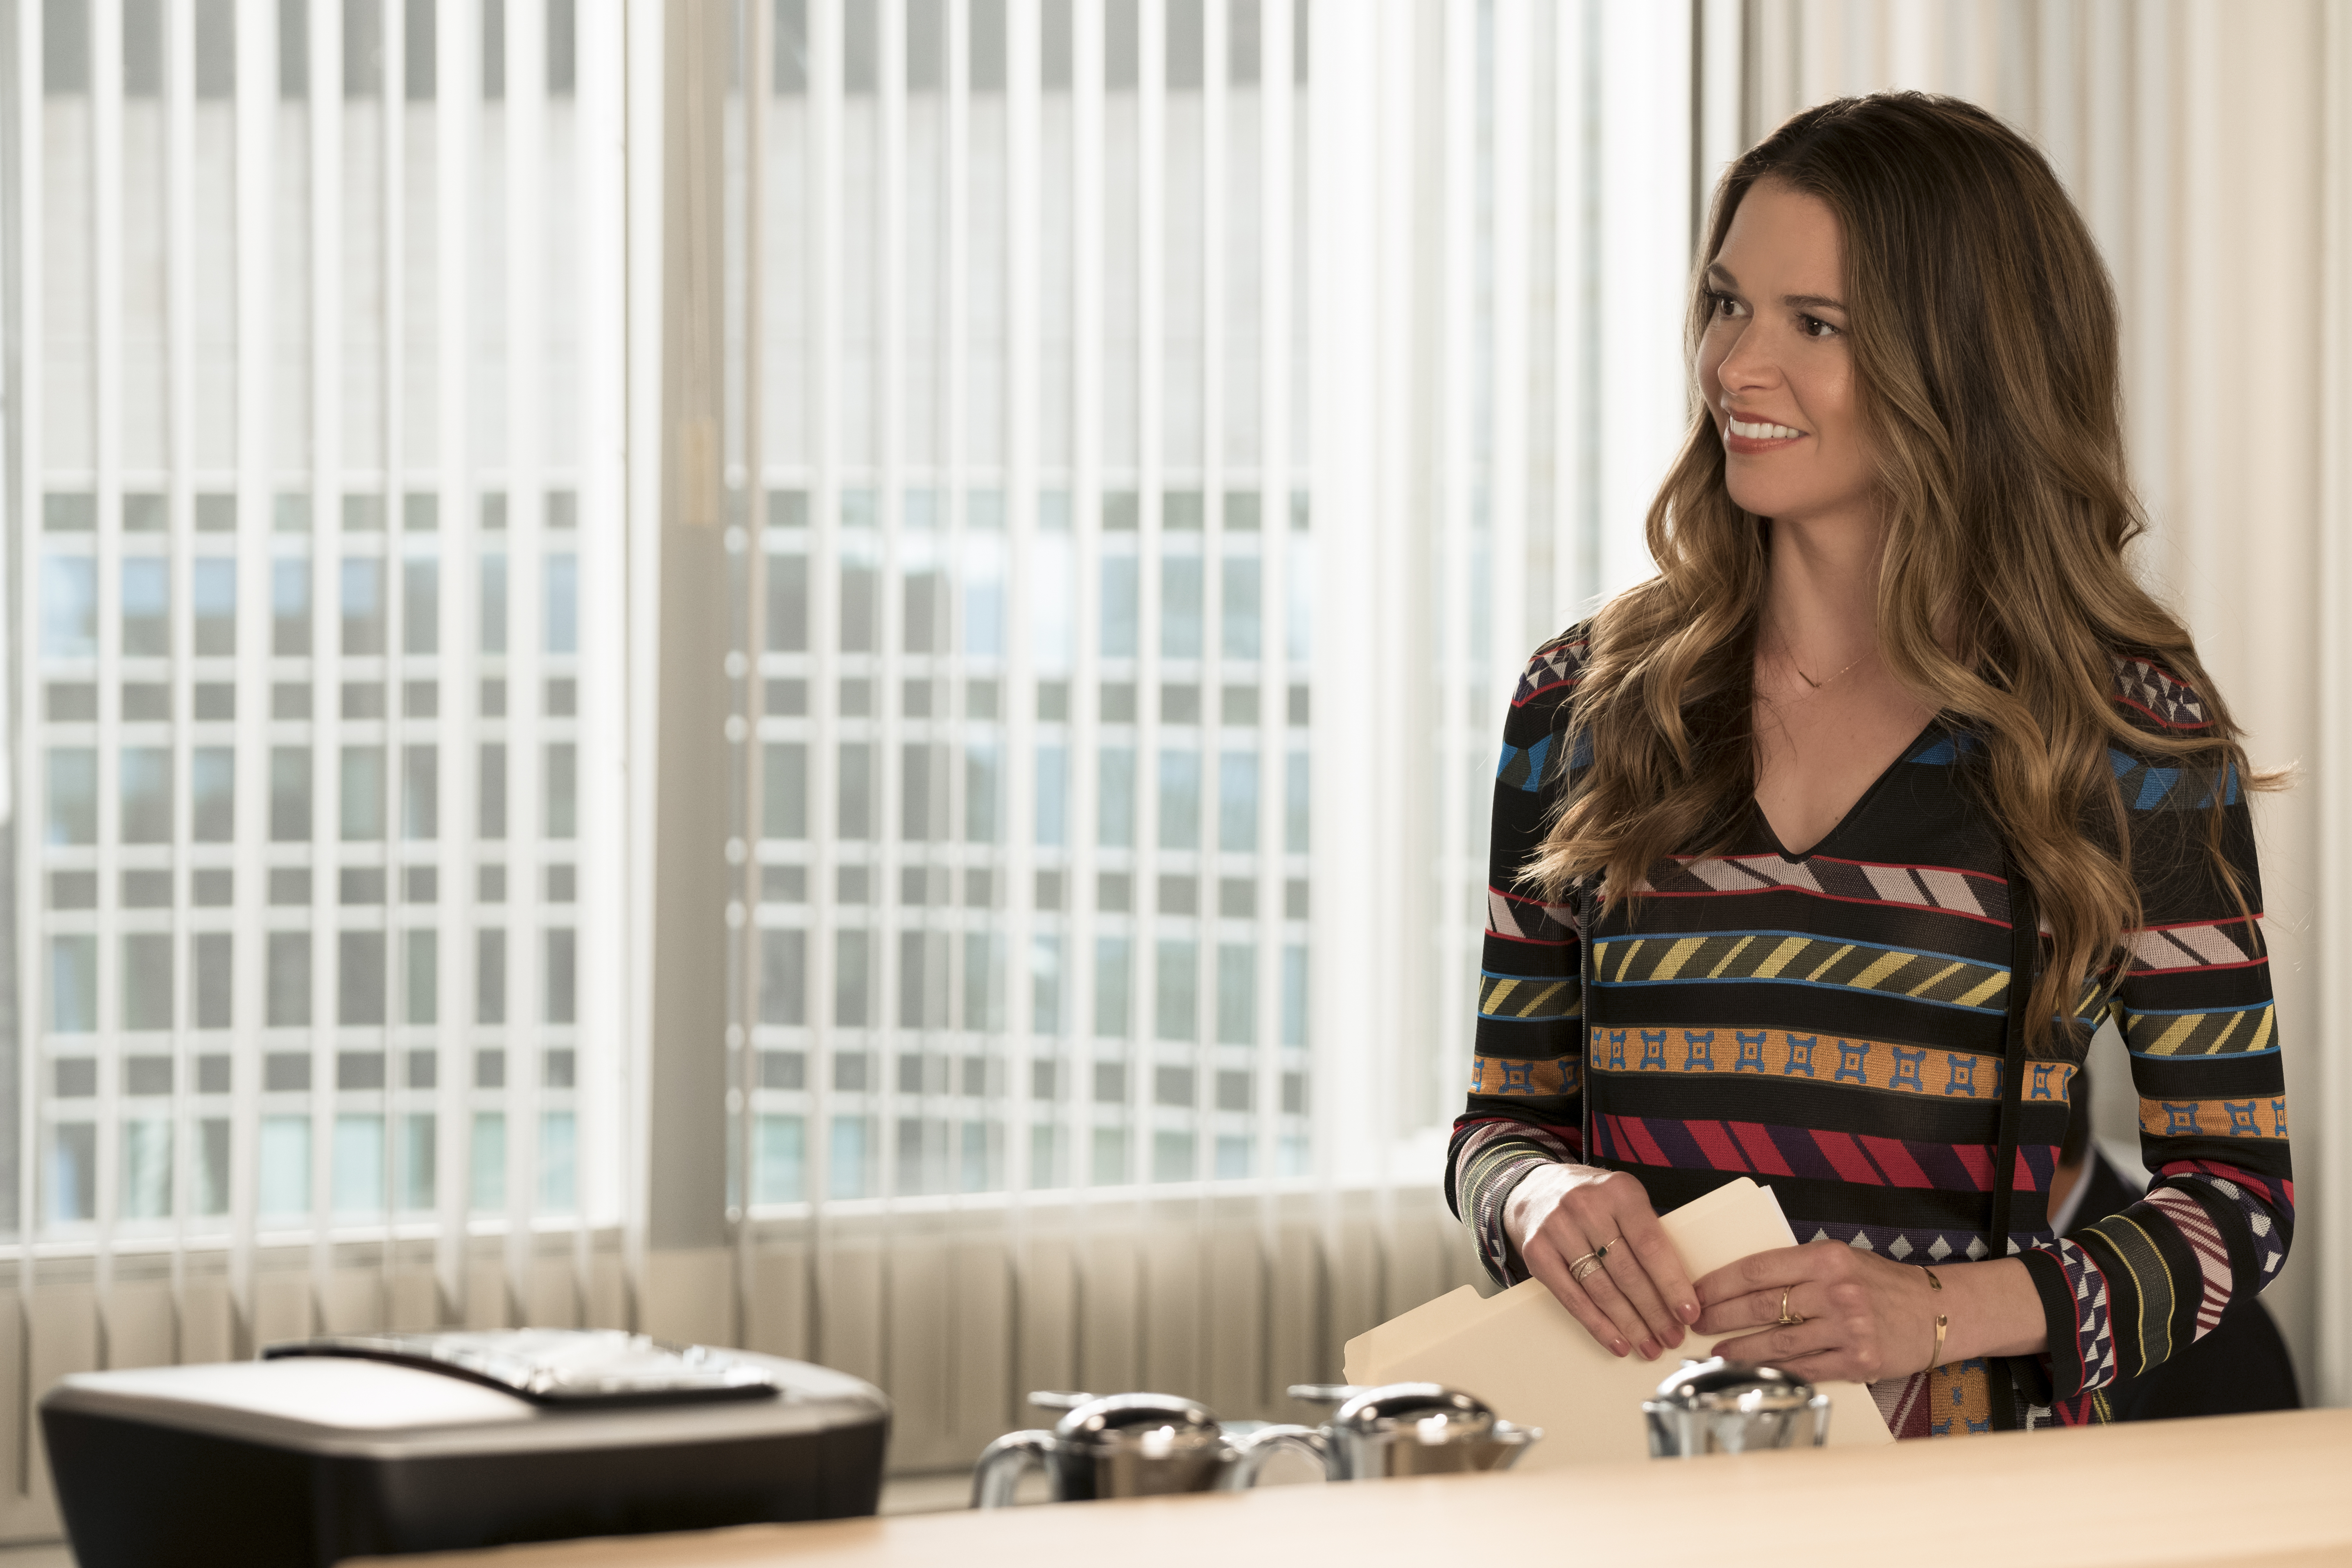 Sutton Foster as Liza Miller in season 4 of Younger.